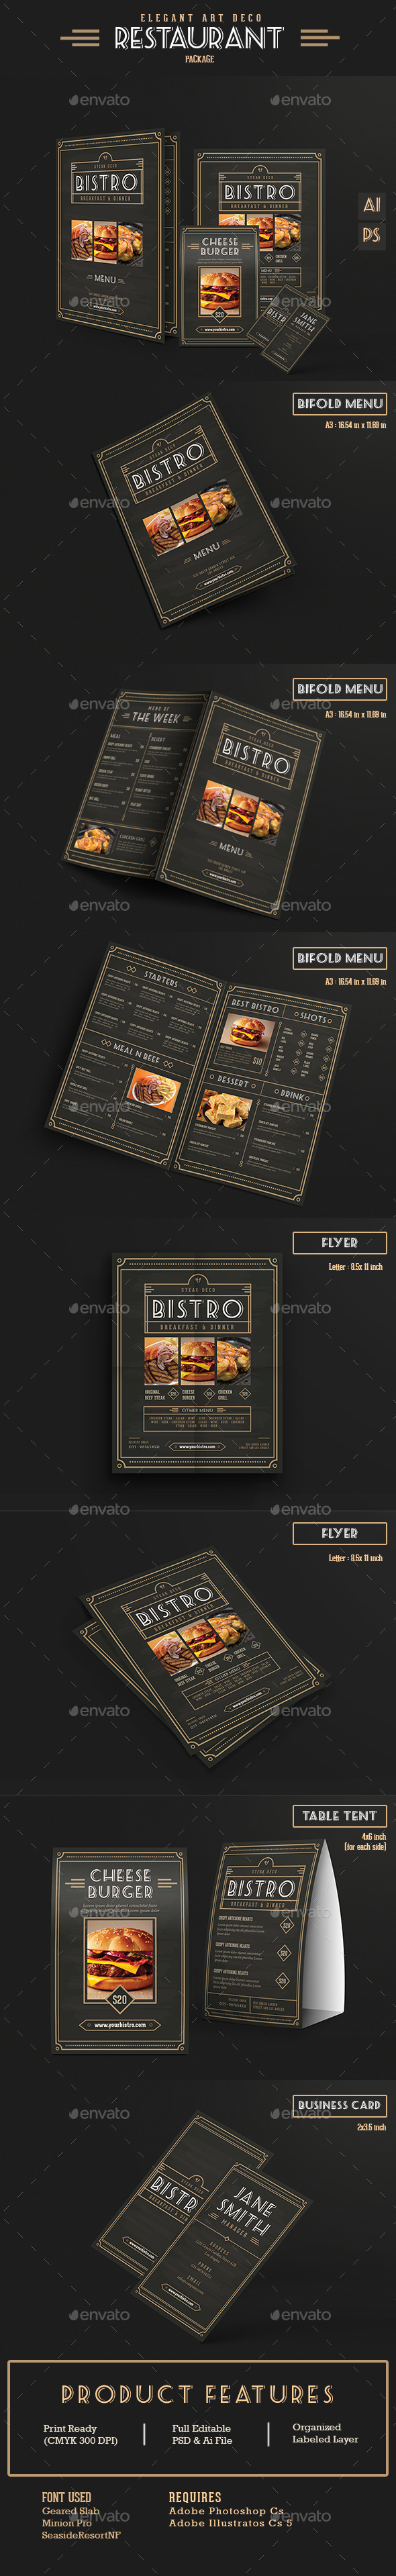 Elegant Restaurant Package - Food Menus Print Templates